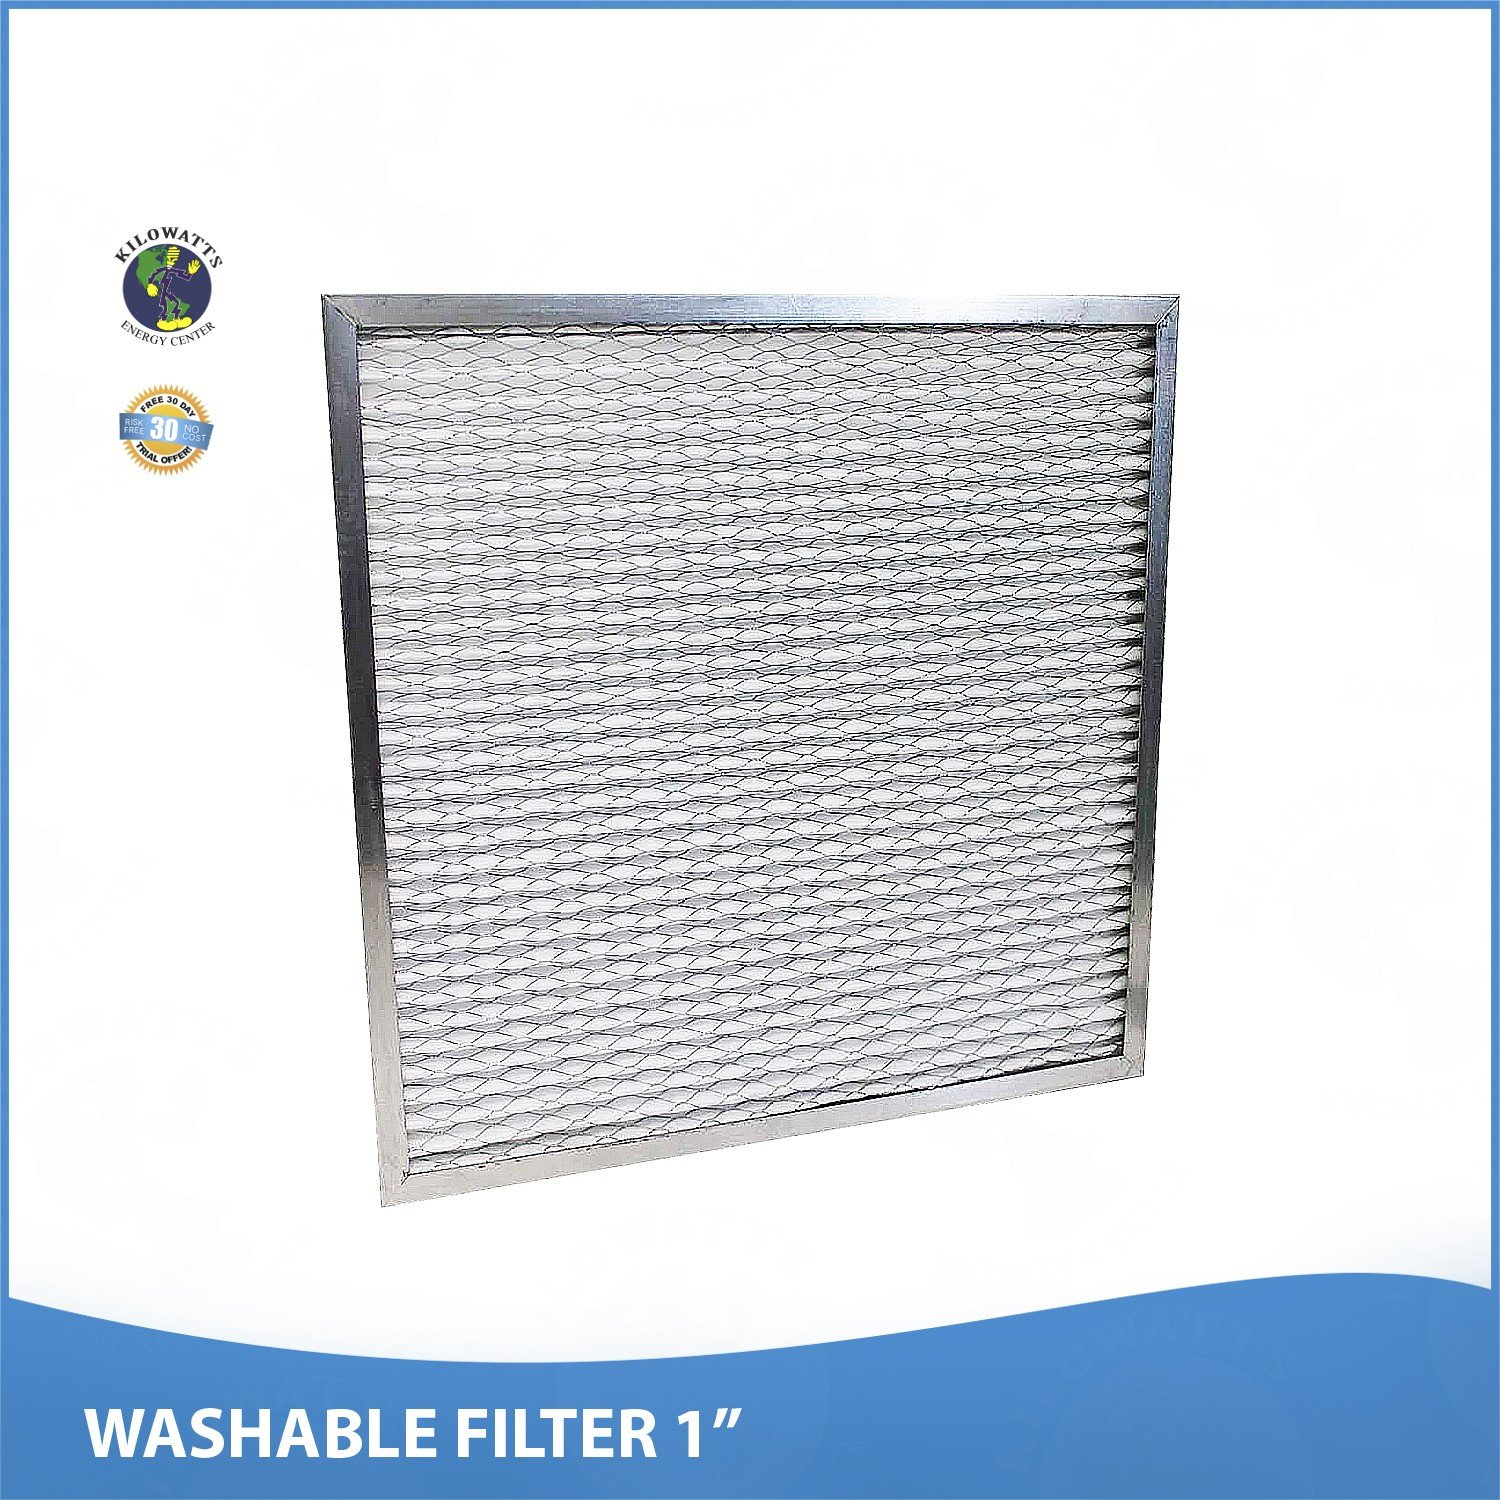 16-3/8 x 21-1/2 x 1 Washable Permanent A/C Furnace Air Filter